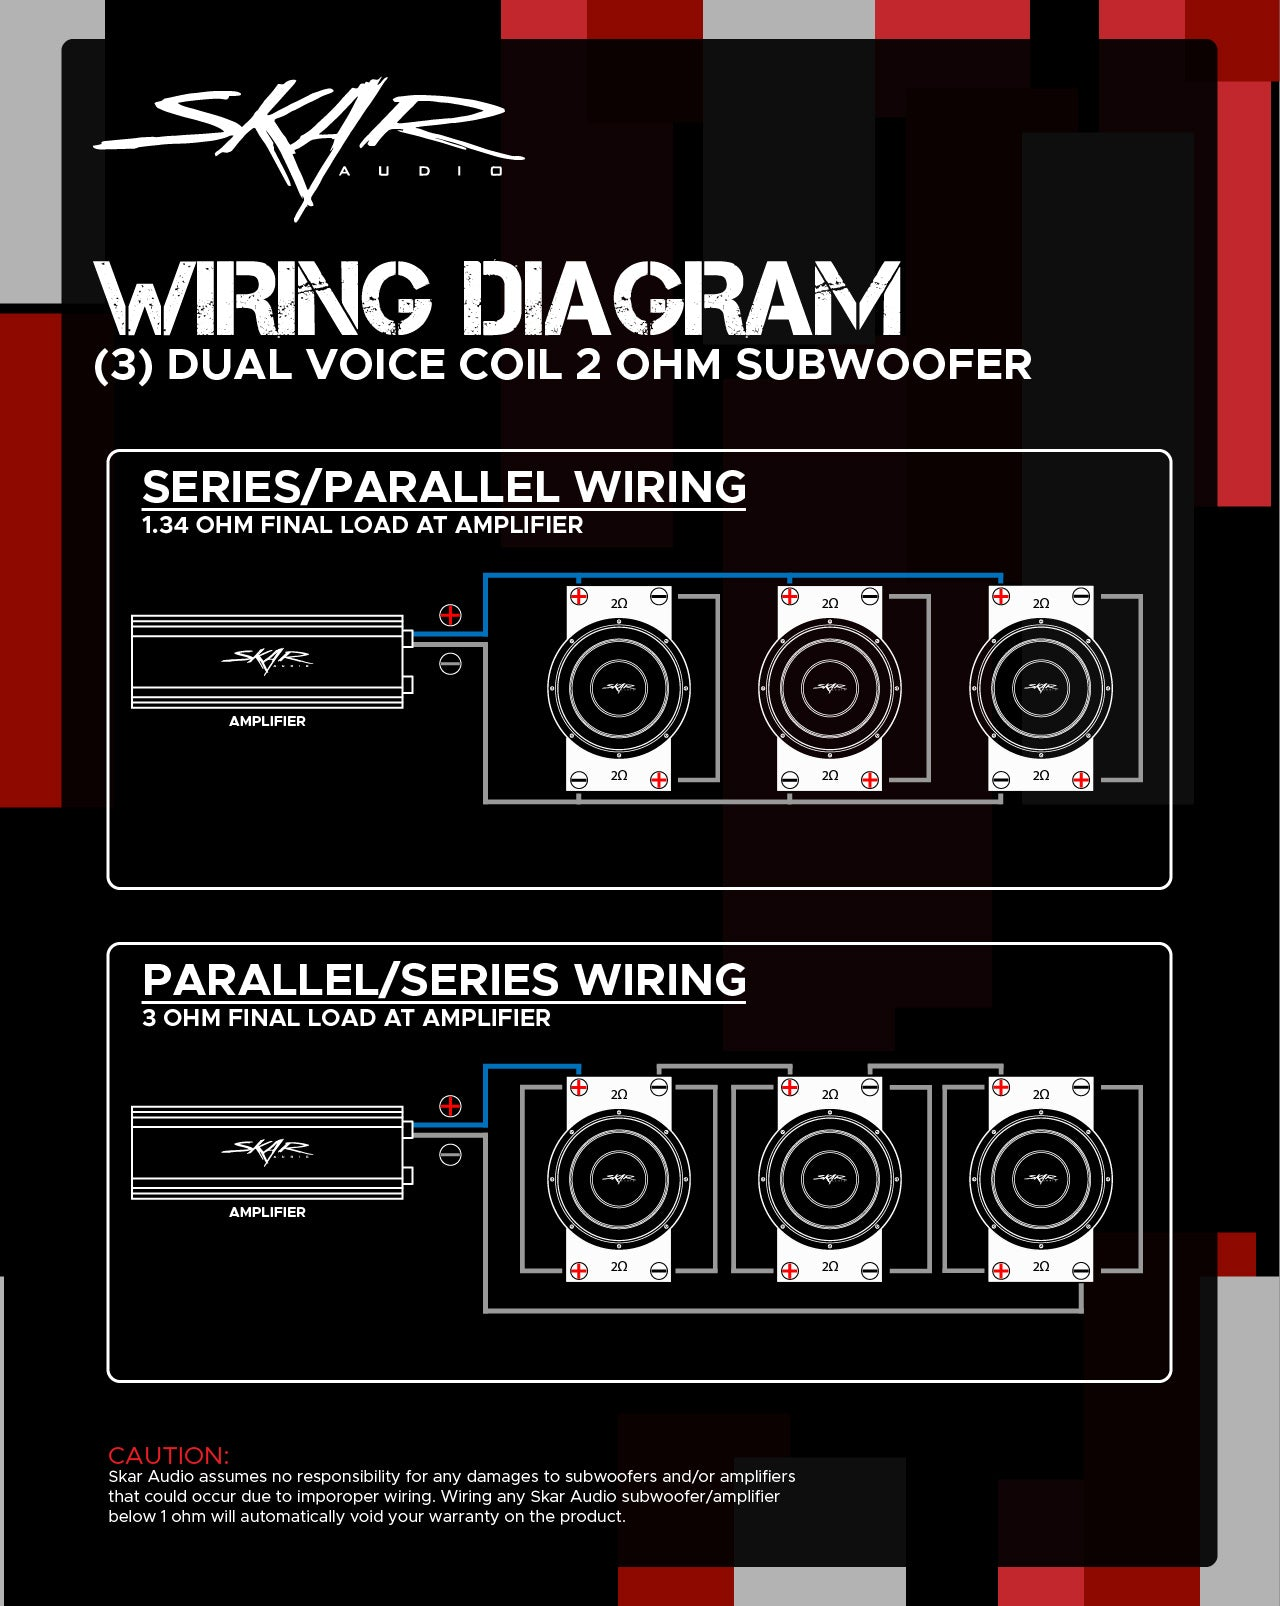 1 Ohm Dual Voice Coil Wiring Diagram from cdn.shopify.com